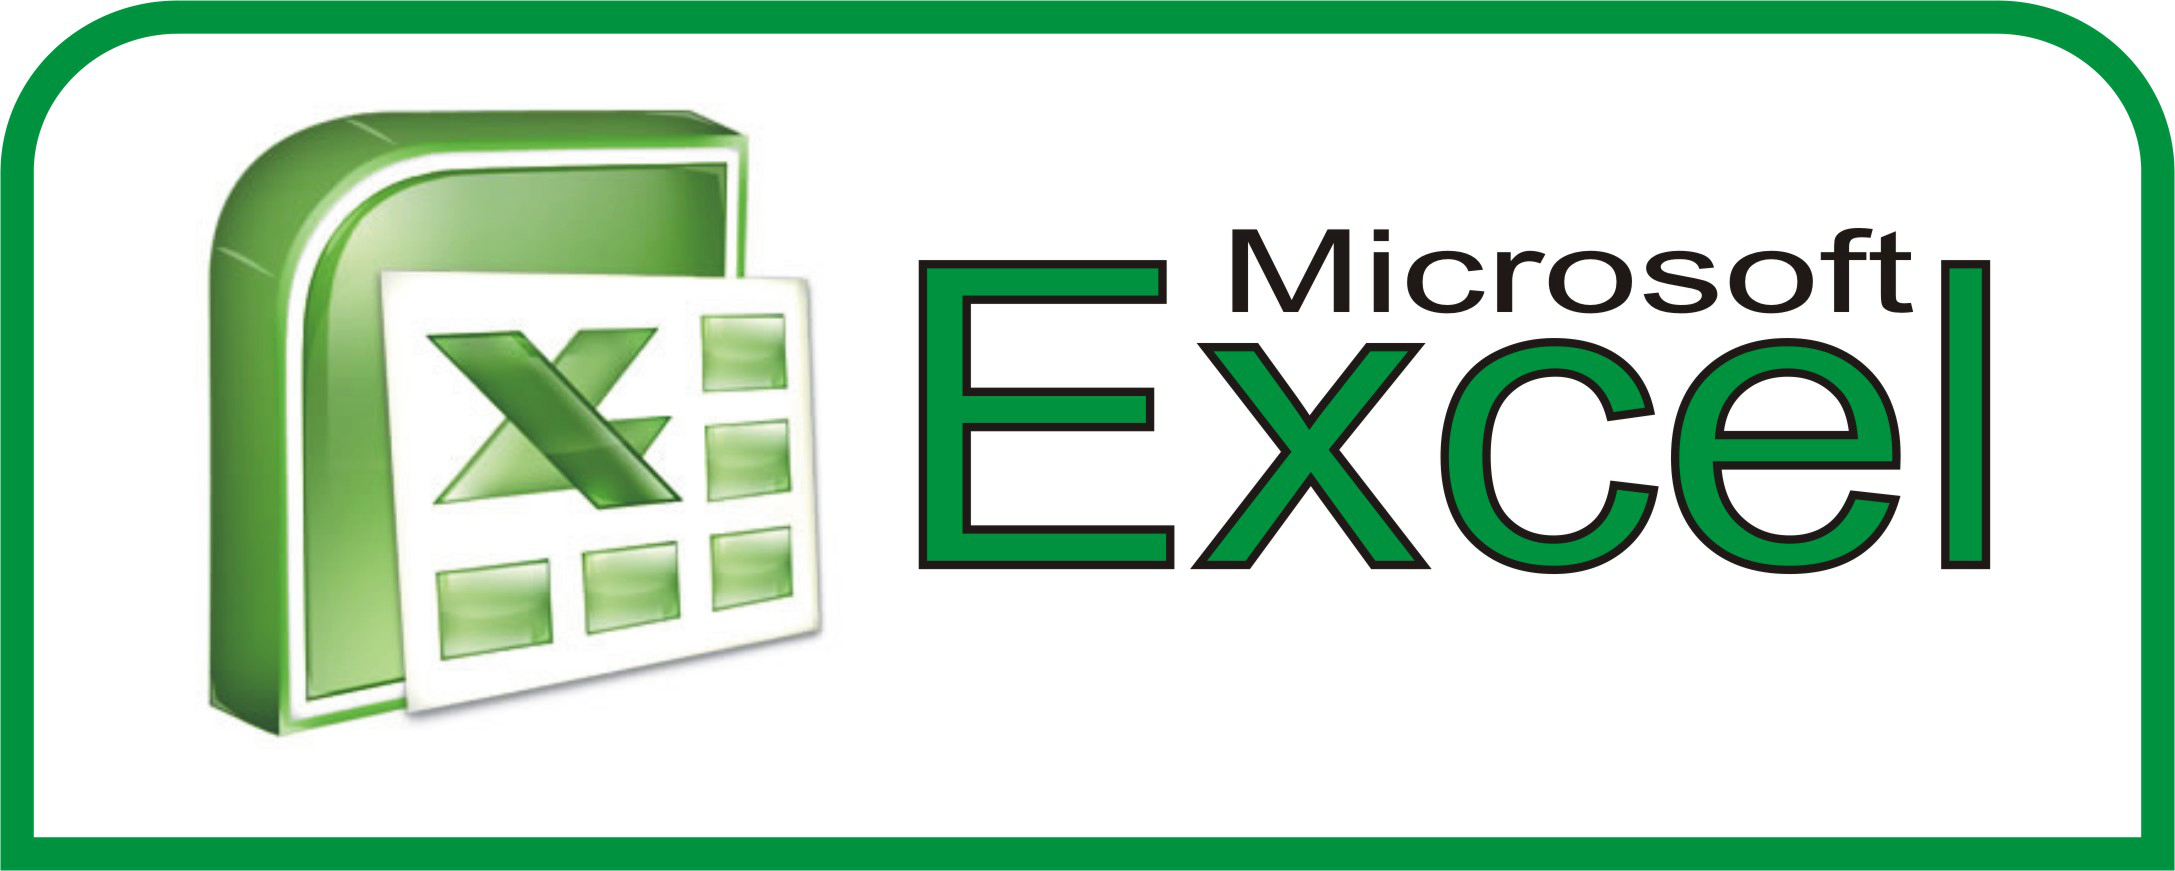 Ediblewildsus  Pretty  Excel Shortcuts You Probably Didnt Know About  Techdissected With Engaging Excel Data Analysis Toolpak  Besides Microsoft Excel Search Function Furthermore Bootstrap Excel With Agreeable Excel  Anova Also Mortgage Payment Formula In Excel In Addition Excel Binary Worksheet And Excel Sumif Between Dates As Well As How To Use Excel  Additionally Gedcom To Excel From Techdissectedcom With Ediblewildsus  Engaging  Excel Shortcuts You Probably Didnt Know About  Techdissected With Agreeable Excel Data Analysis Toolpak  Besides Microsoft Excel Search Function Furthermore Bootstrap Excel And Pretty Excel  Anova Also Mortgage Payment Formula In Excel In Addition Excel Binary Worksheet From Techdissectedcom